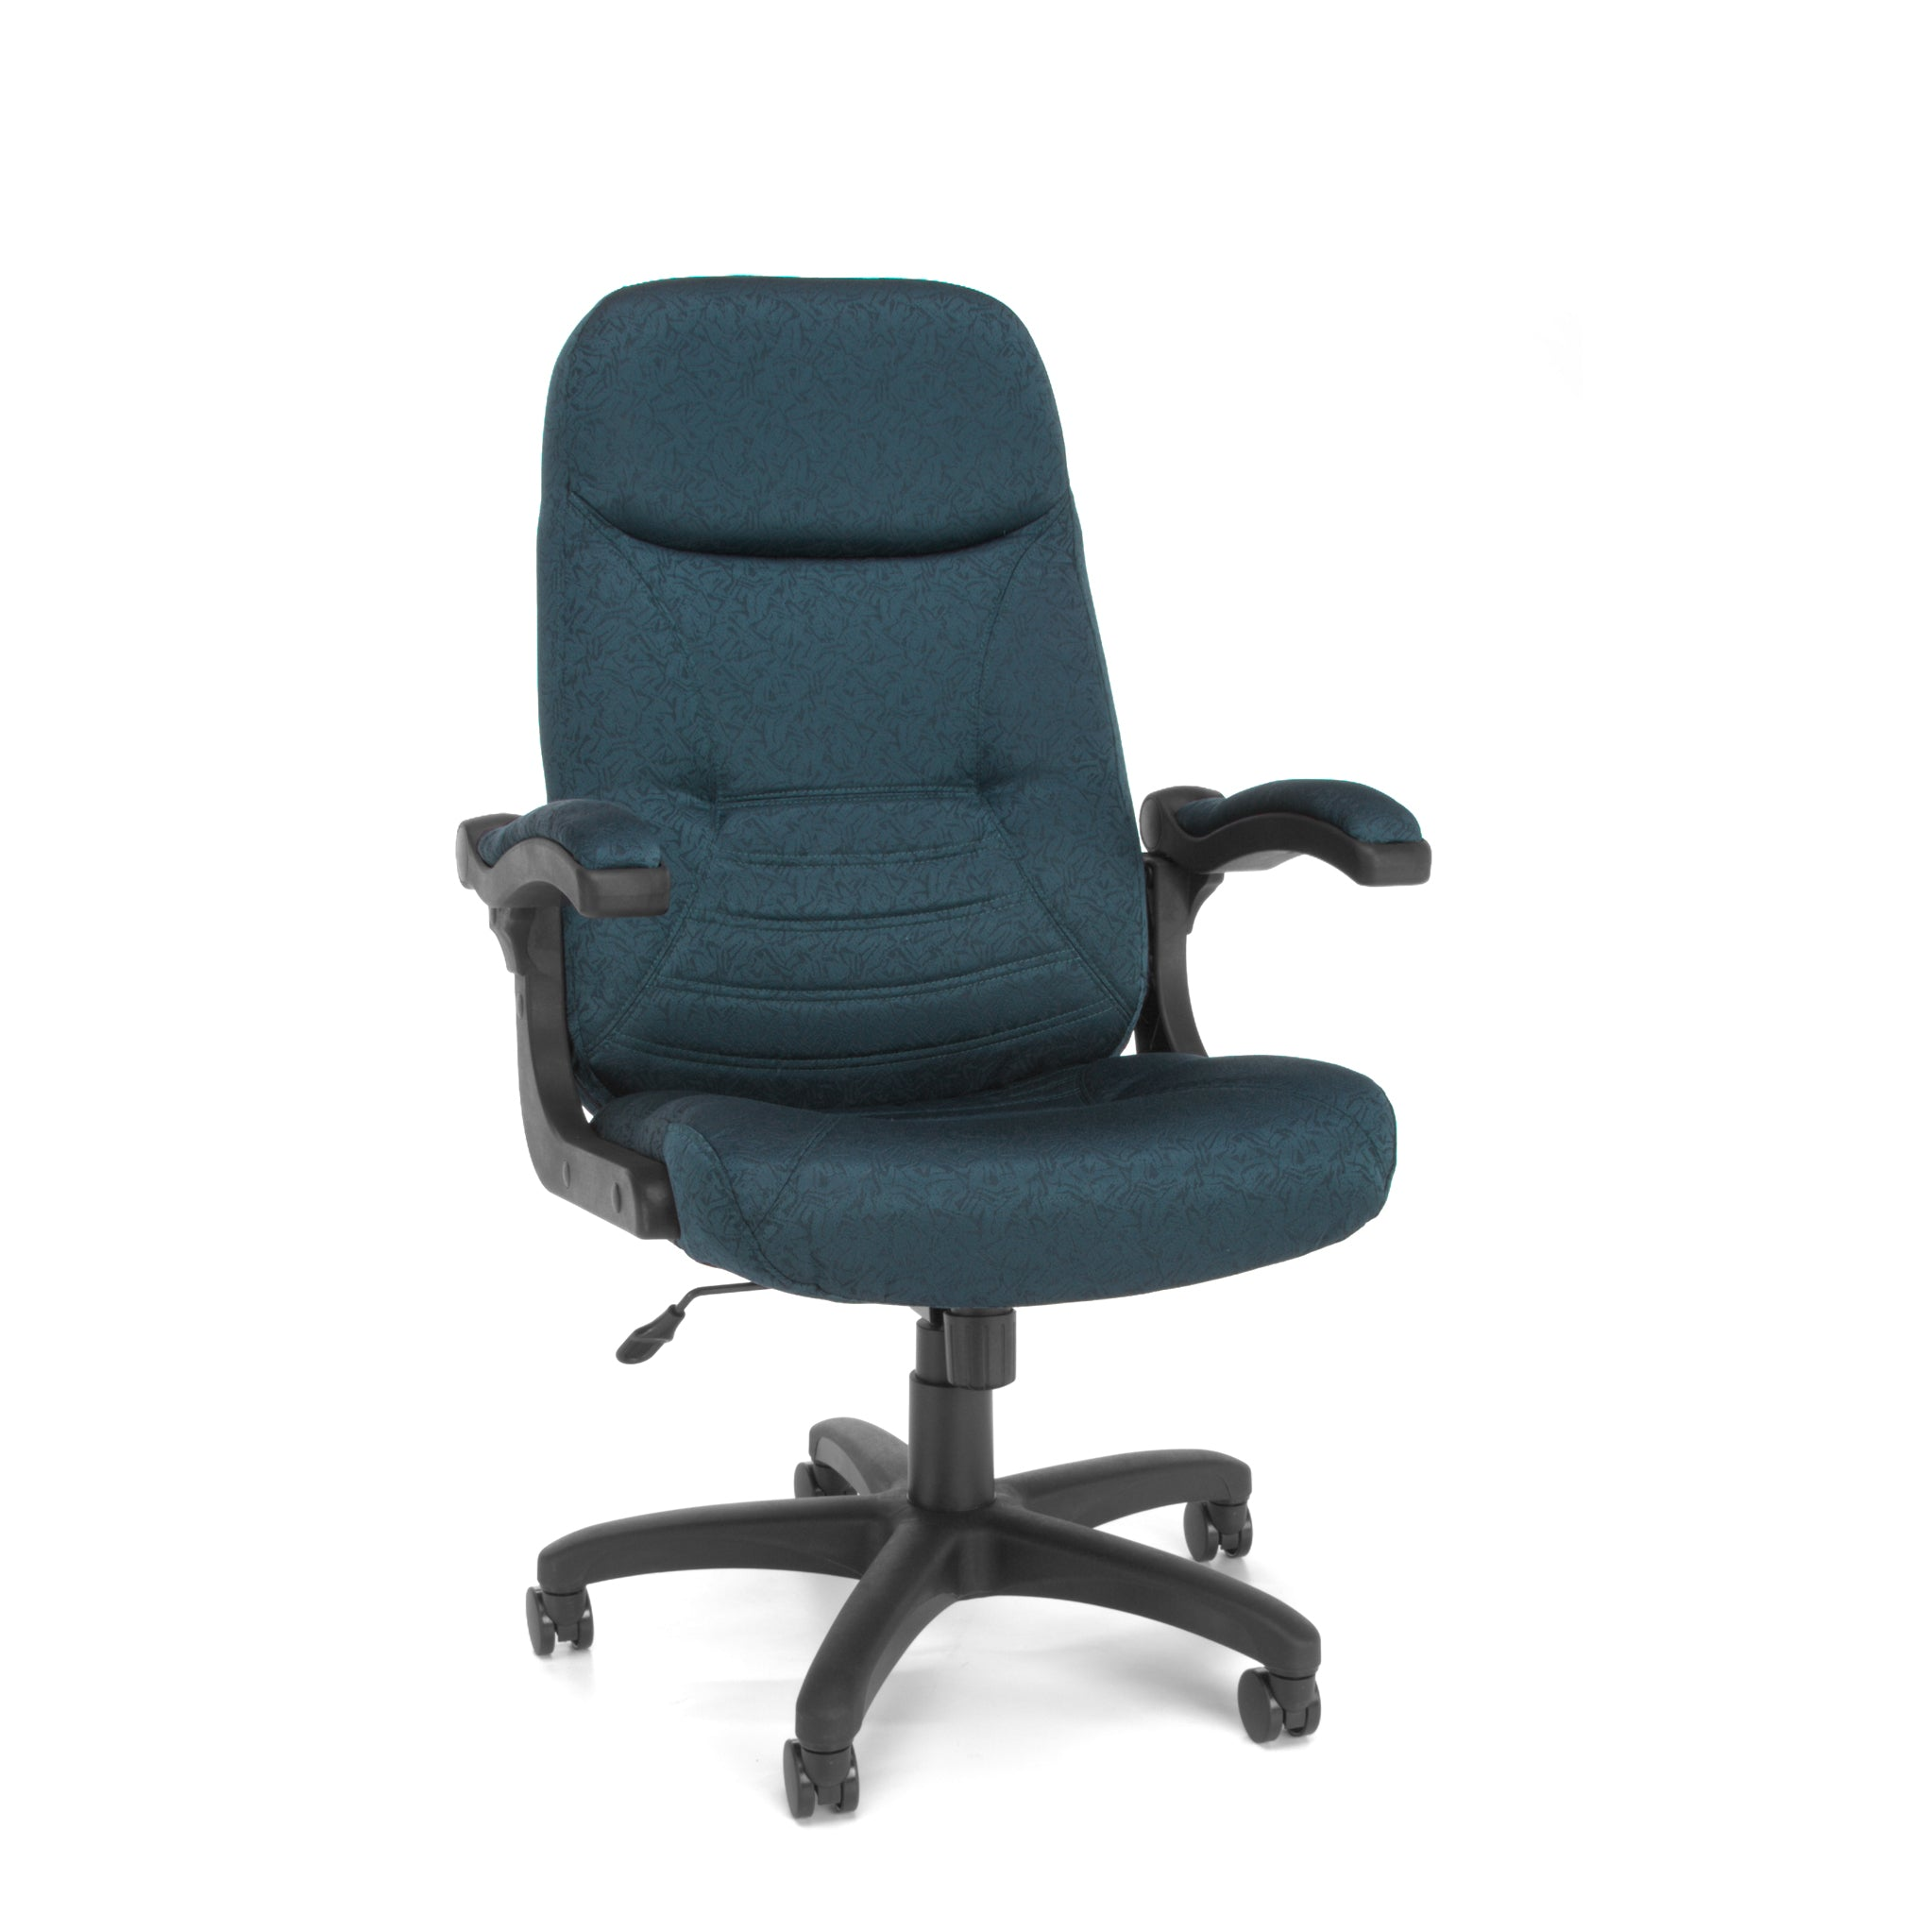 Ofminc Model 550 Mobile Arm Executive/Conference Chair